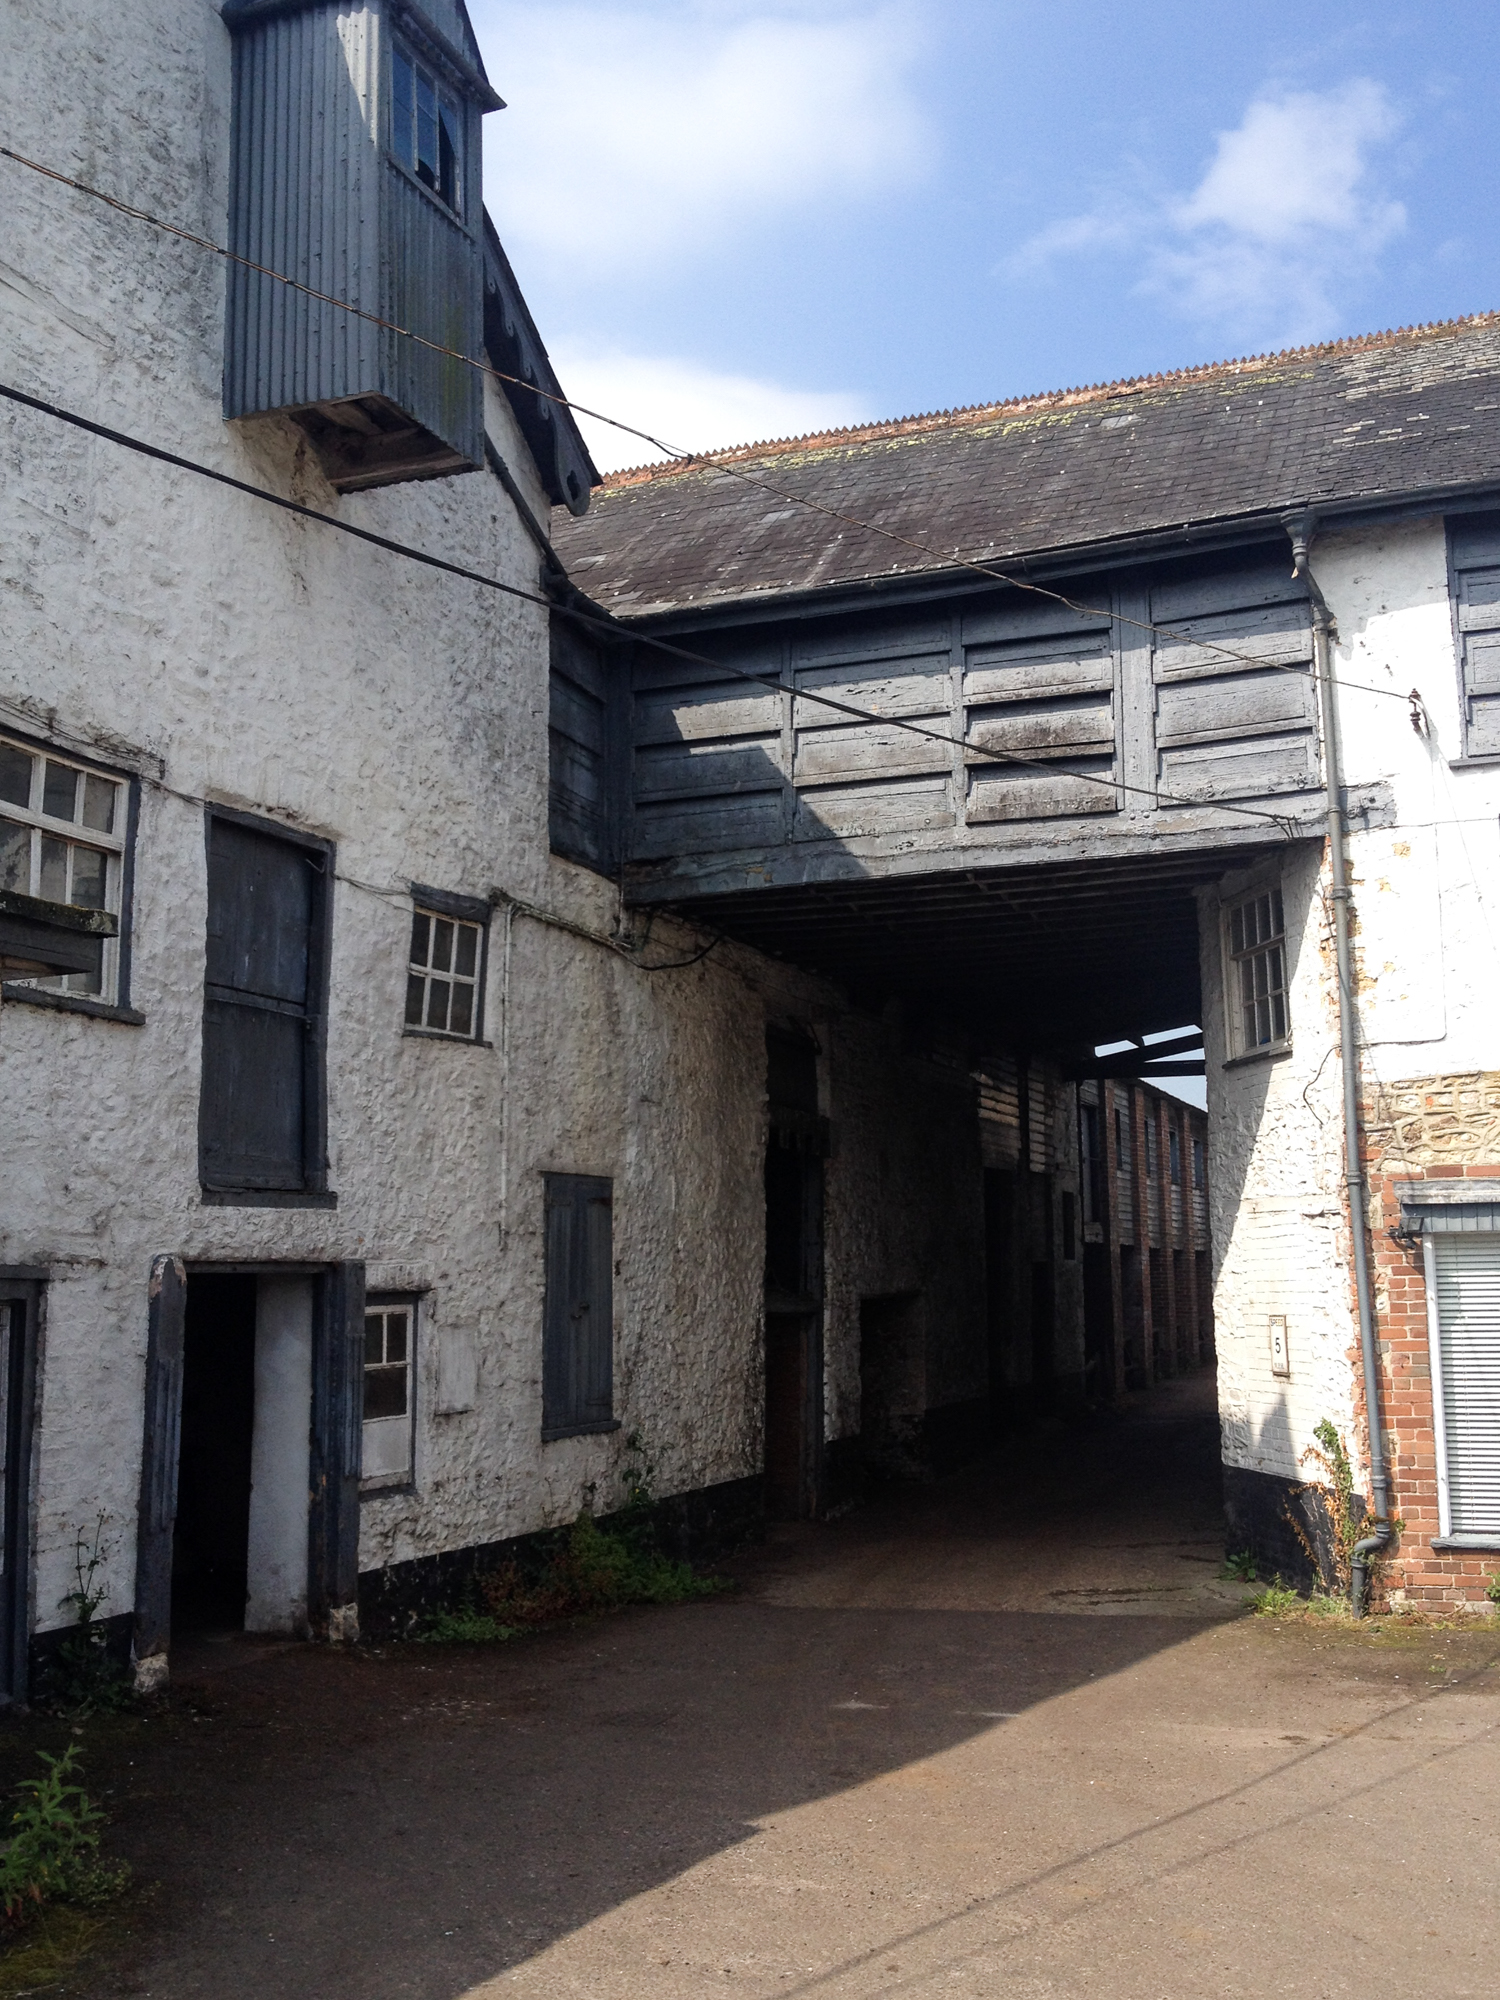 Eighteenth Century tannery of Colyton Dorset, last producer of Oak Bark tanned leather